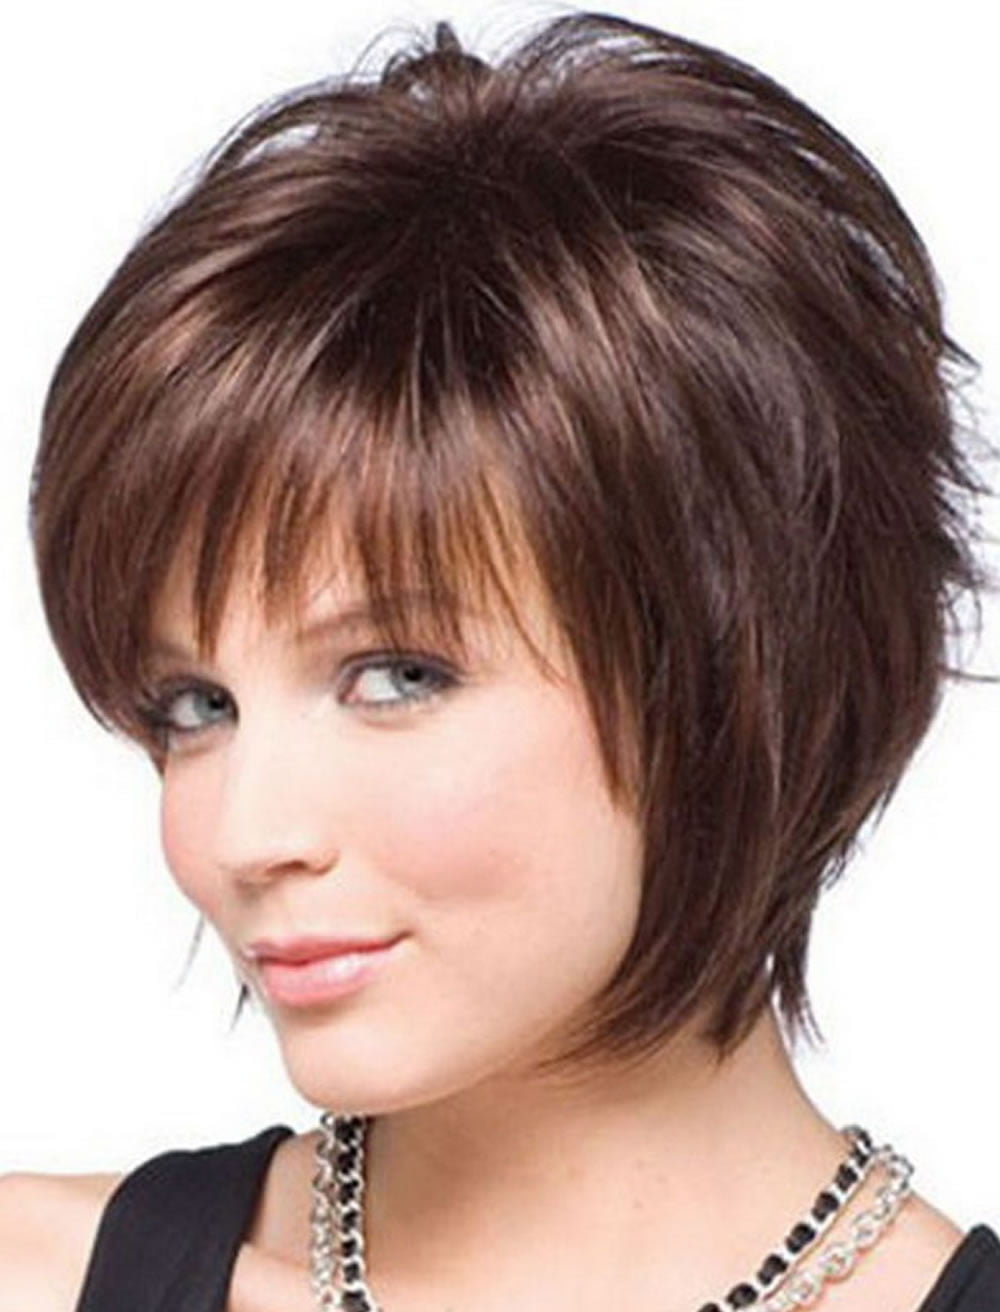 Short Haircuts for Round Face Thin Hair ideas for 2018 - Page 2 - HAIRSTYLES